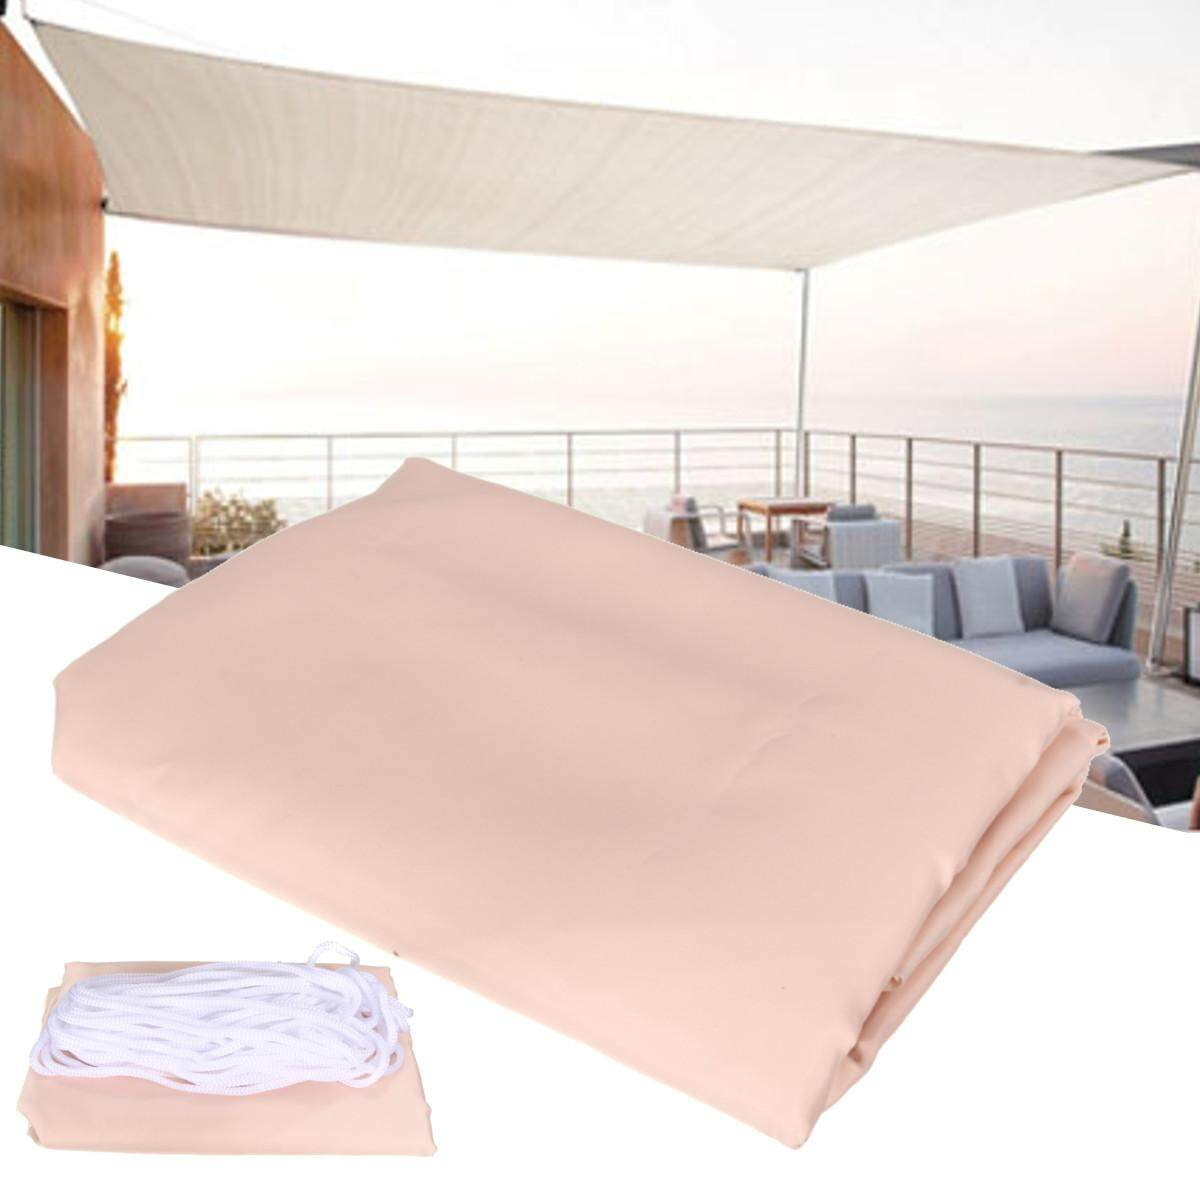 OUTDOOR TOP SUN ShADE SAIL SHRLTER GARDEN CAR COVER AWNING CANOPY PATIO 2.5X2.5M